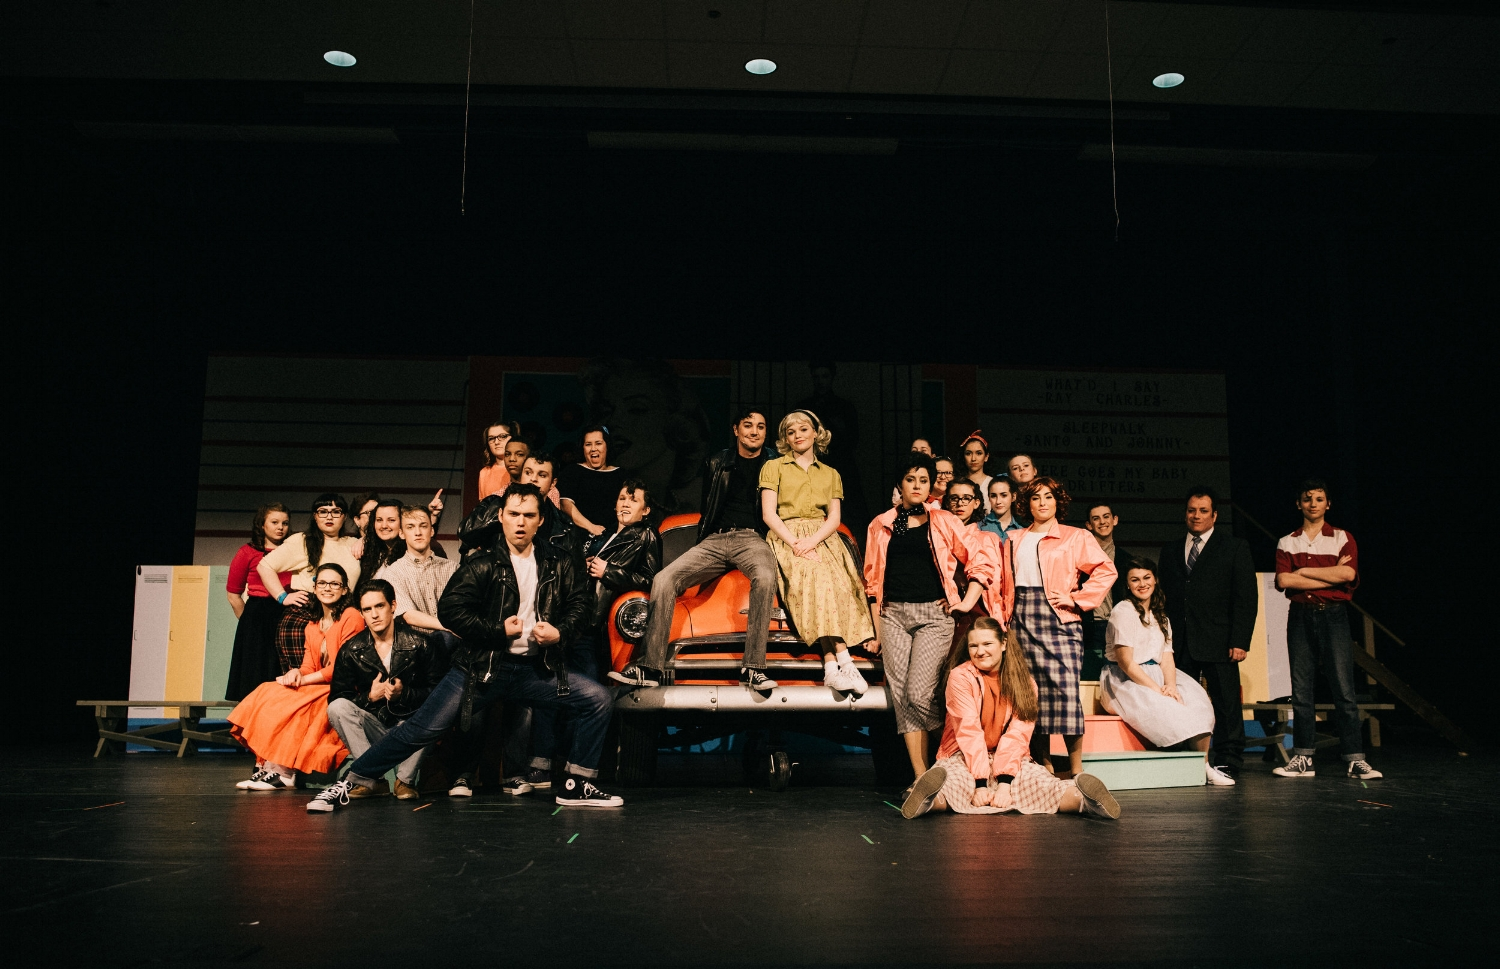 CPP-GREASE-2015-GRAND-HAVEN-38.jpg